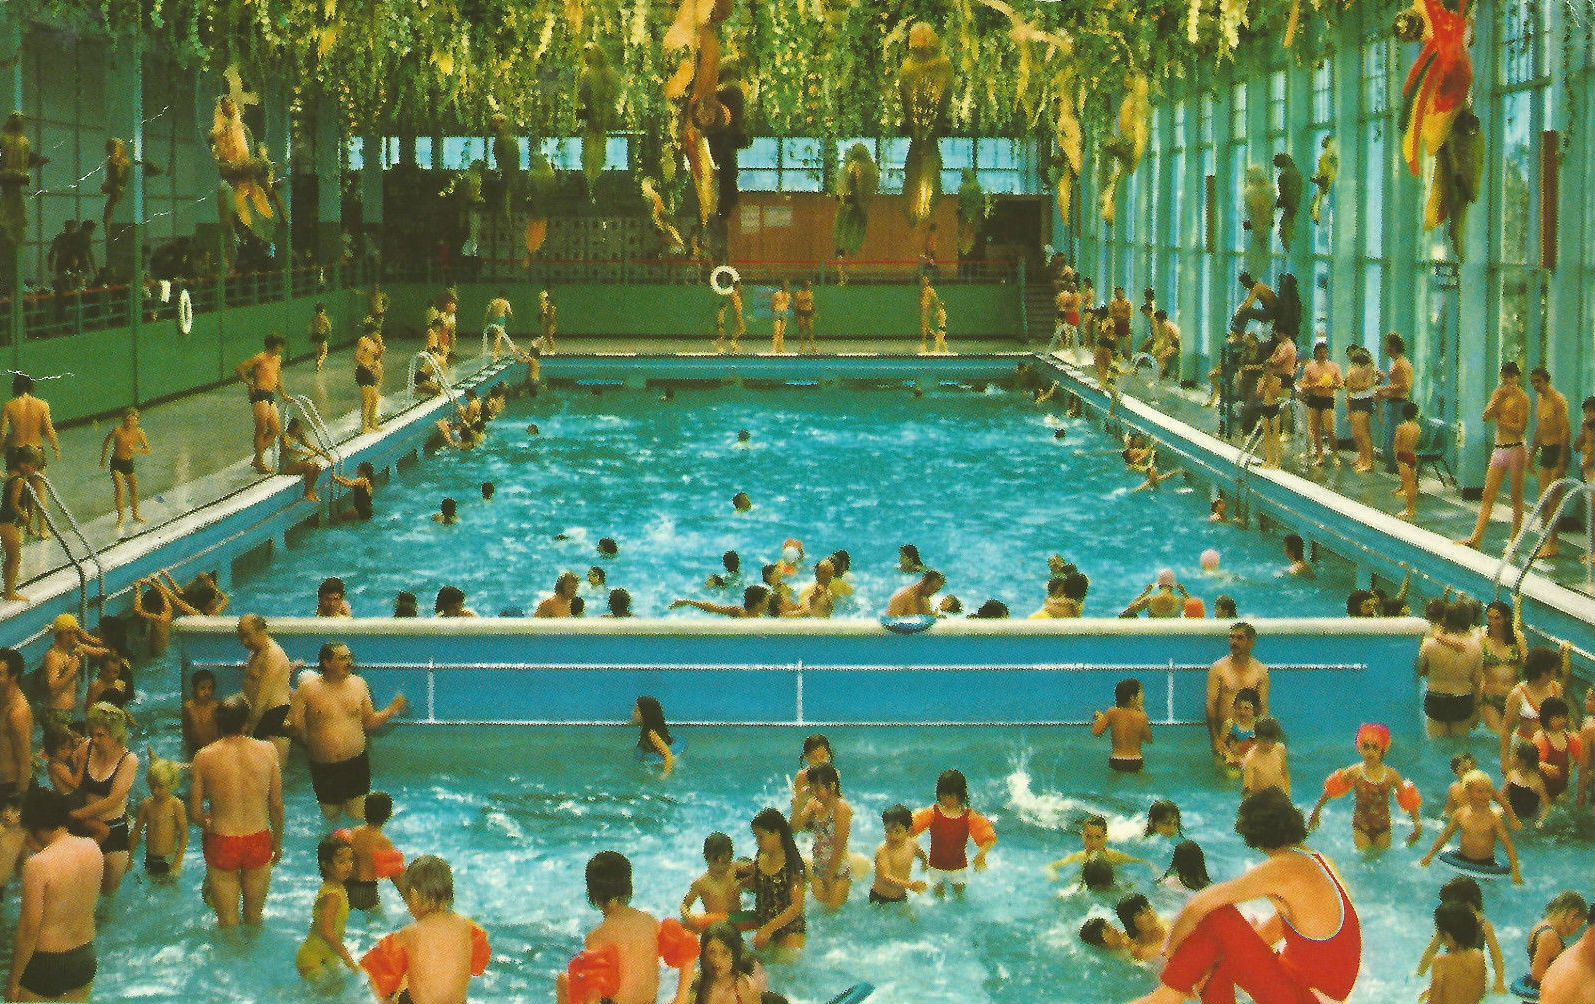 The Heated Indoor Pool At Butlinu0027s Minehead Holiday Camp In 1975.